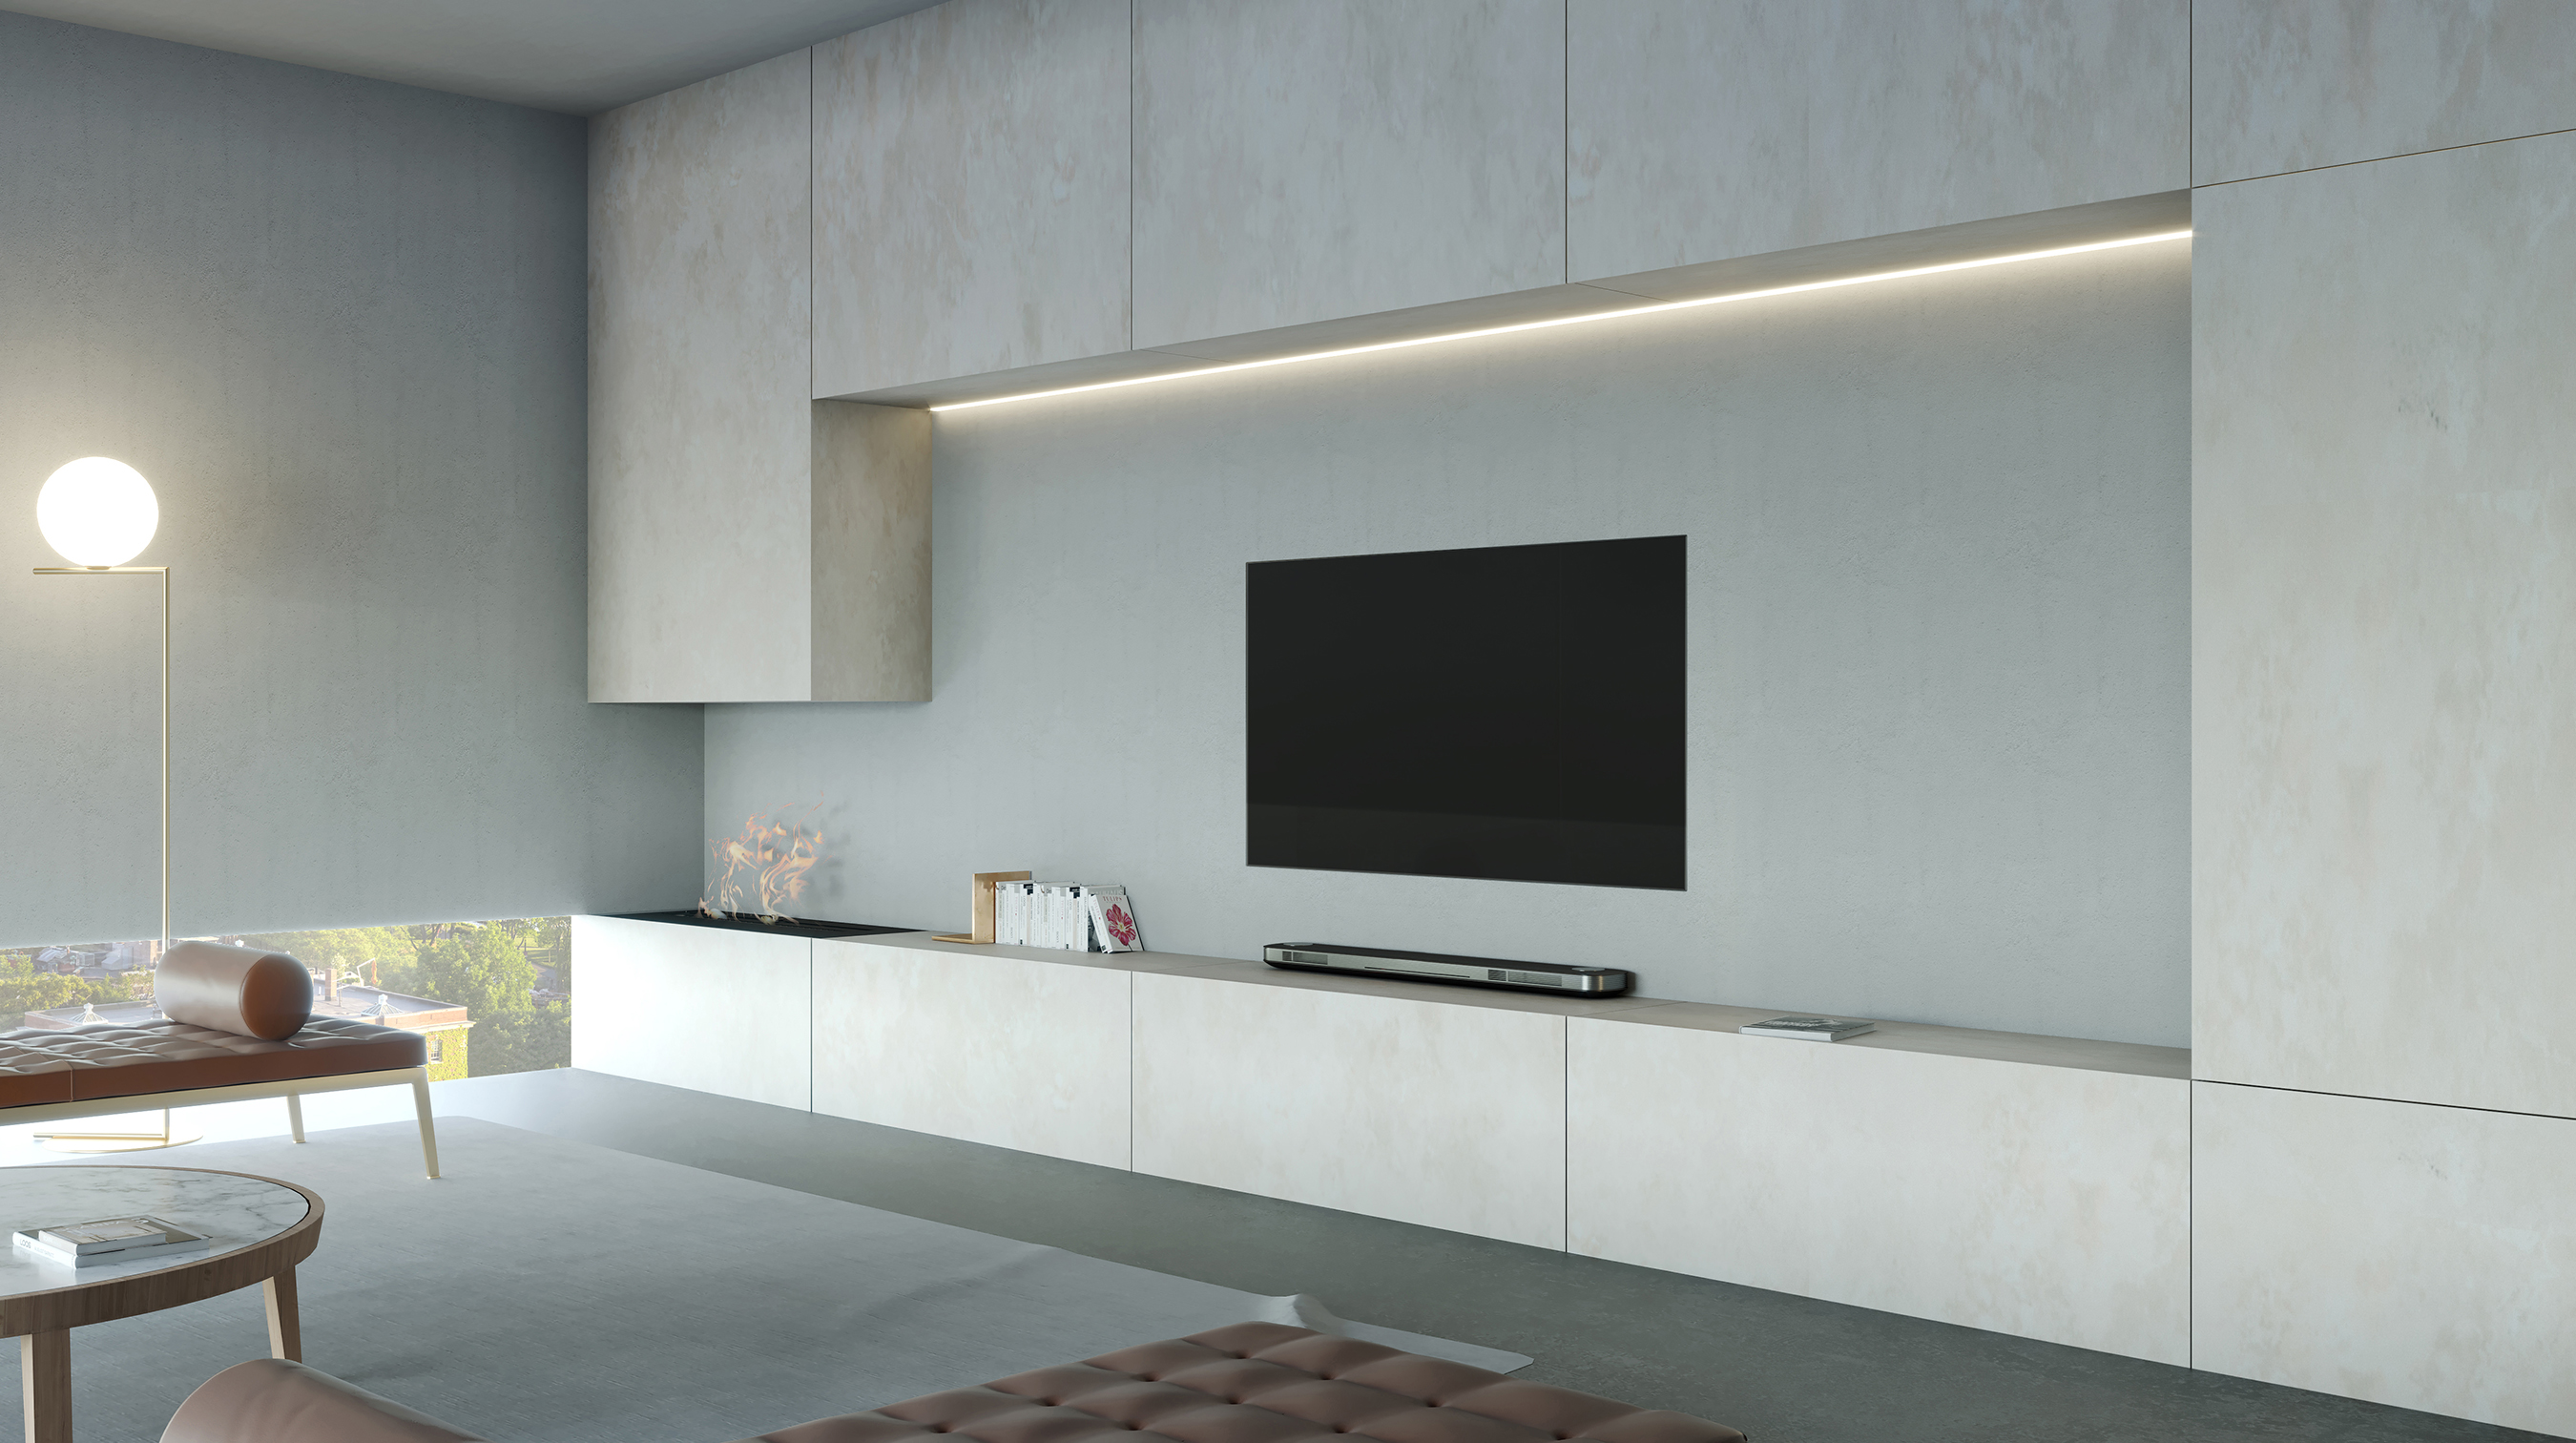 LG SIGNATURE OLED TV W with cream tones